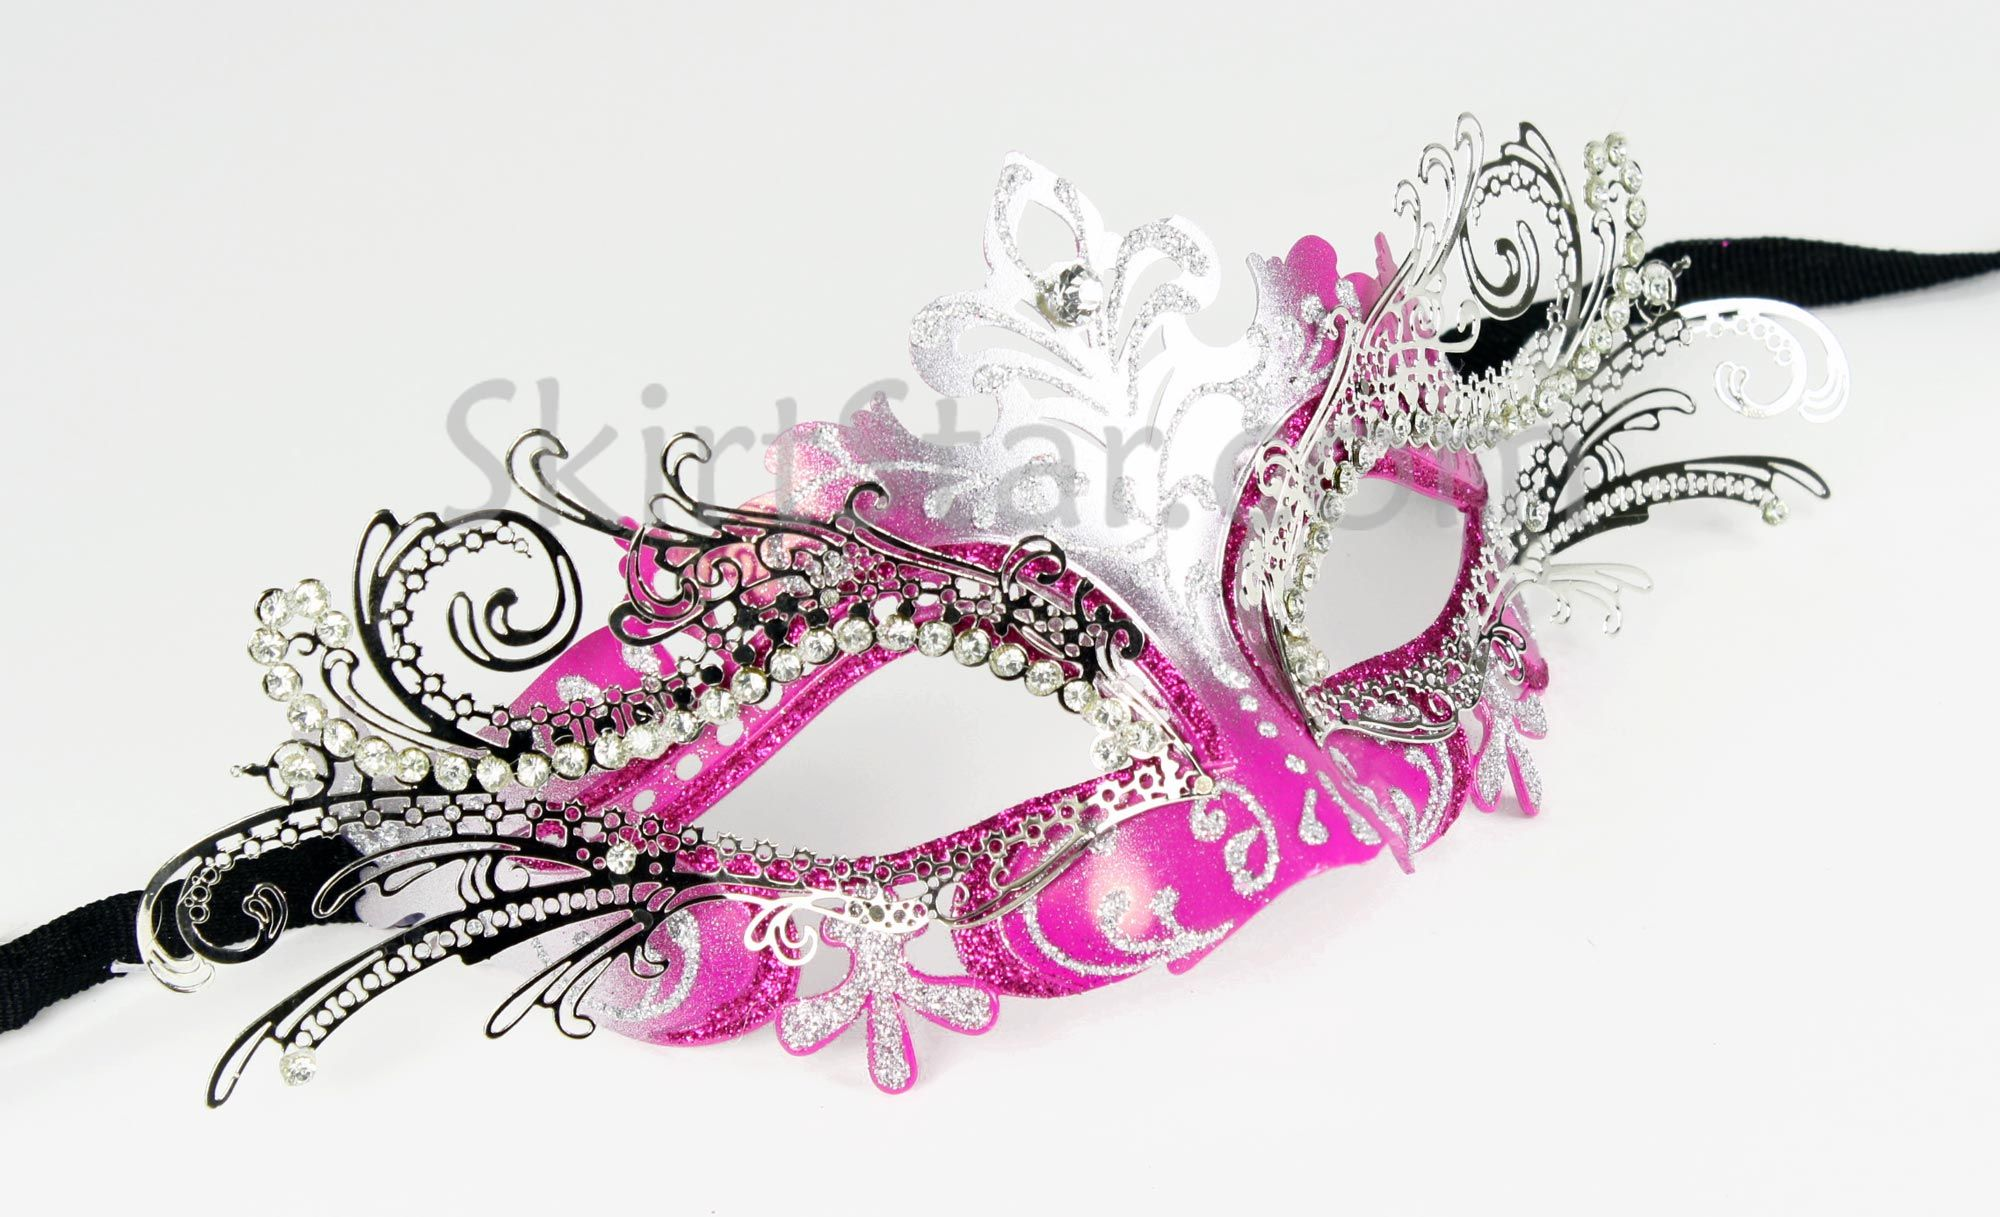 Masquerade mask masquerade mask vine mask metal lace masquerade - Black Masquerade Masks For Women Laser Cut Metal Venetian Mask Masquerade Ball Hot Pink Silver